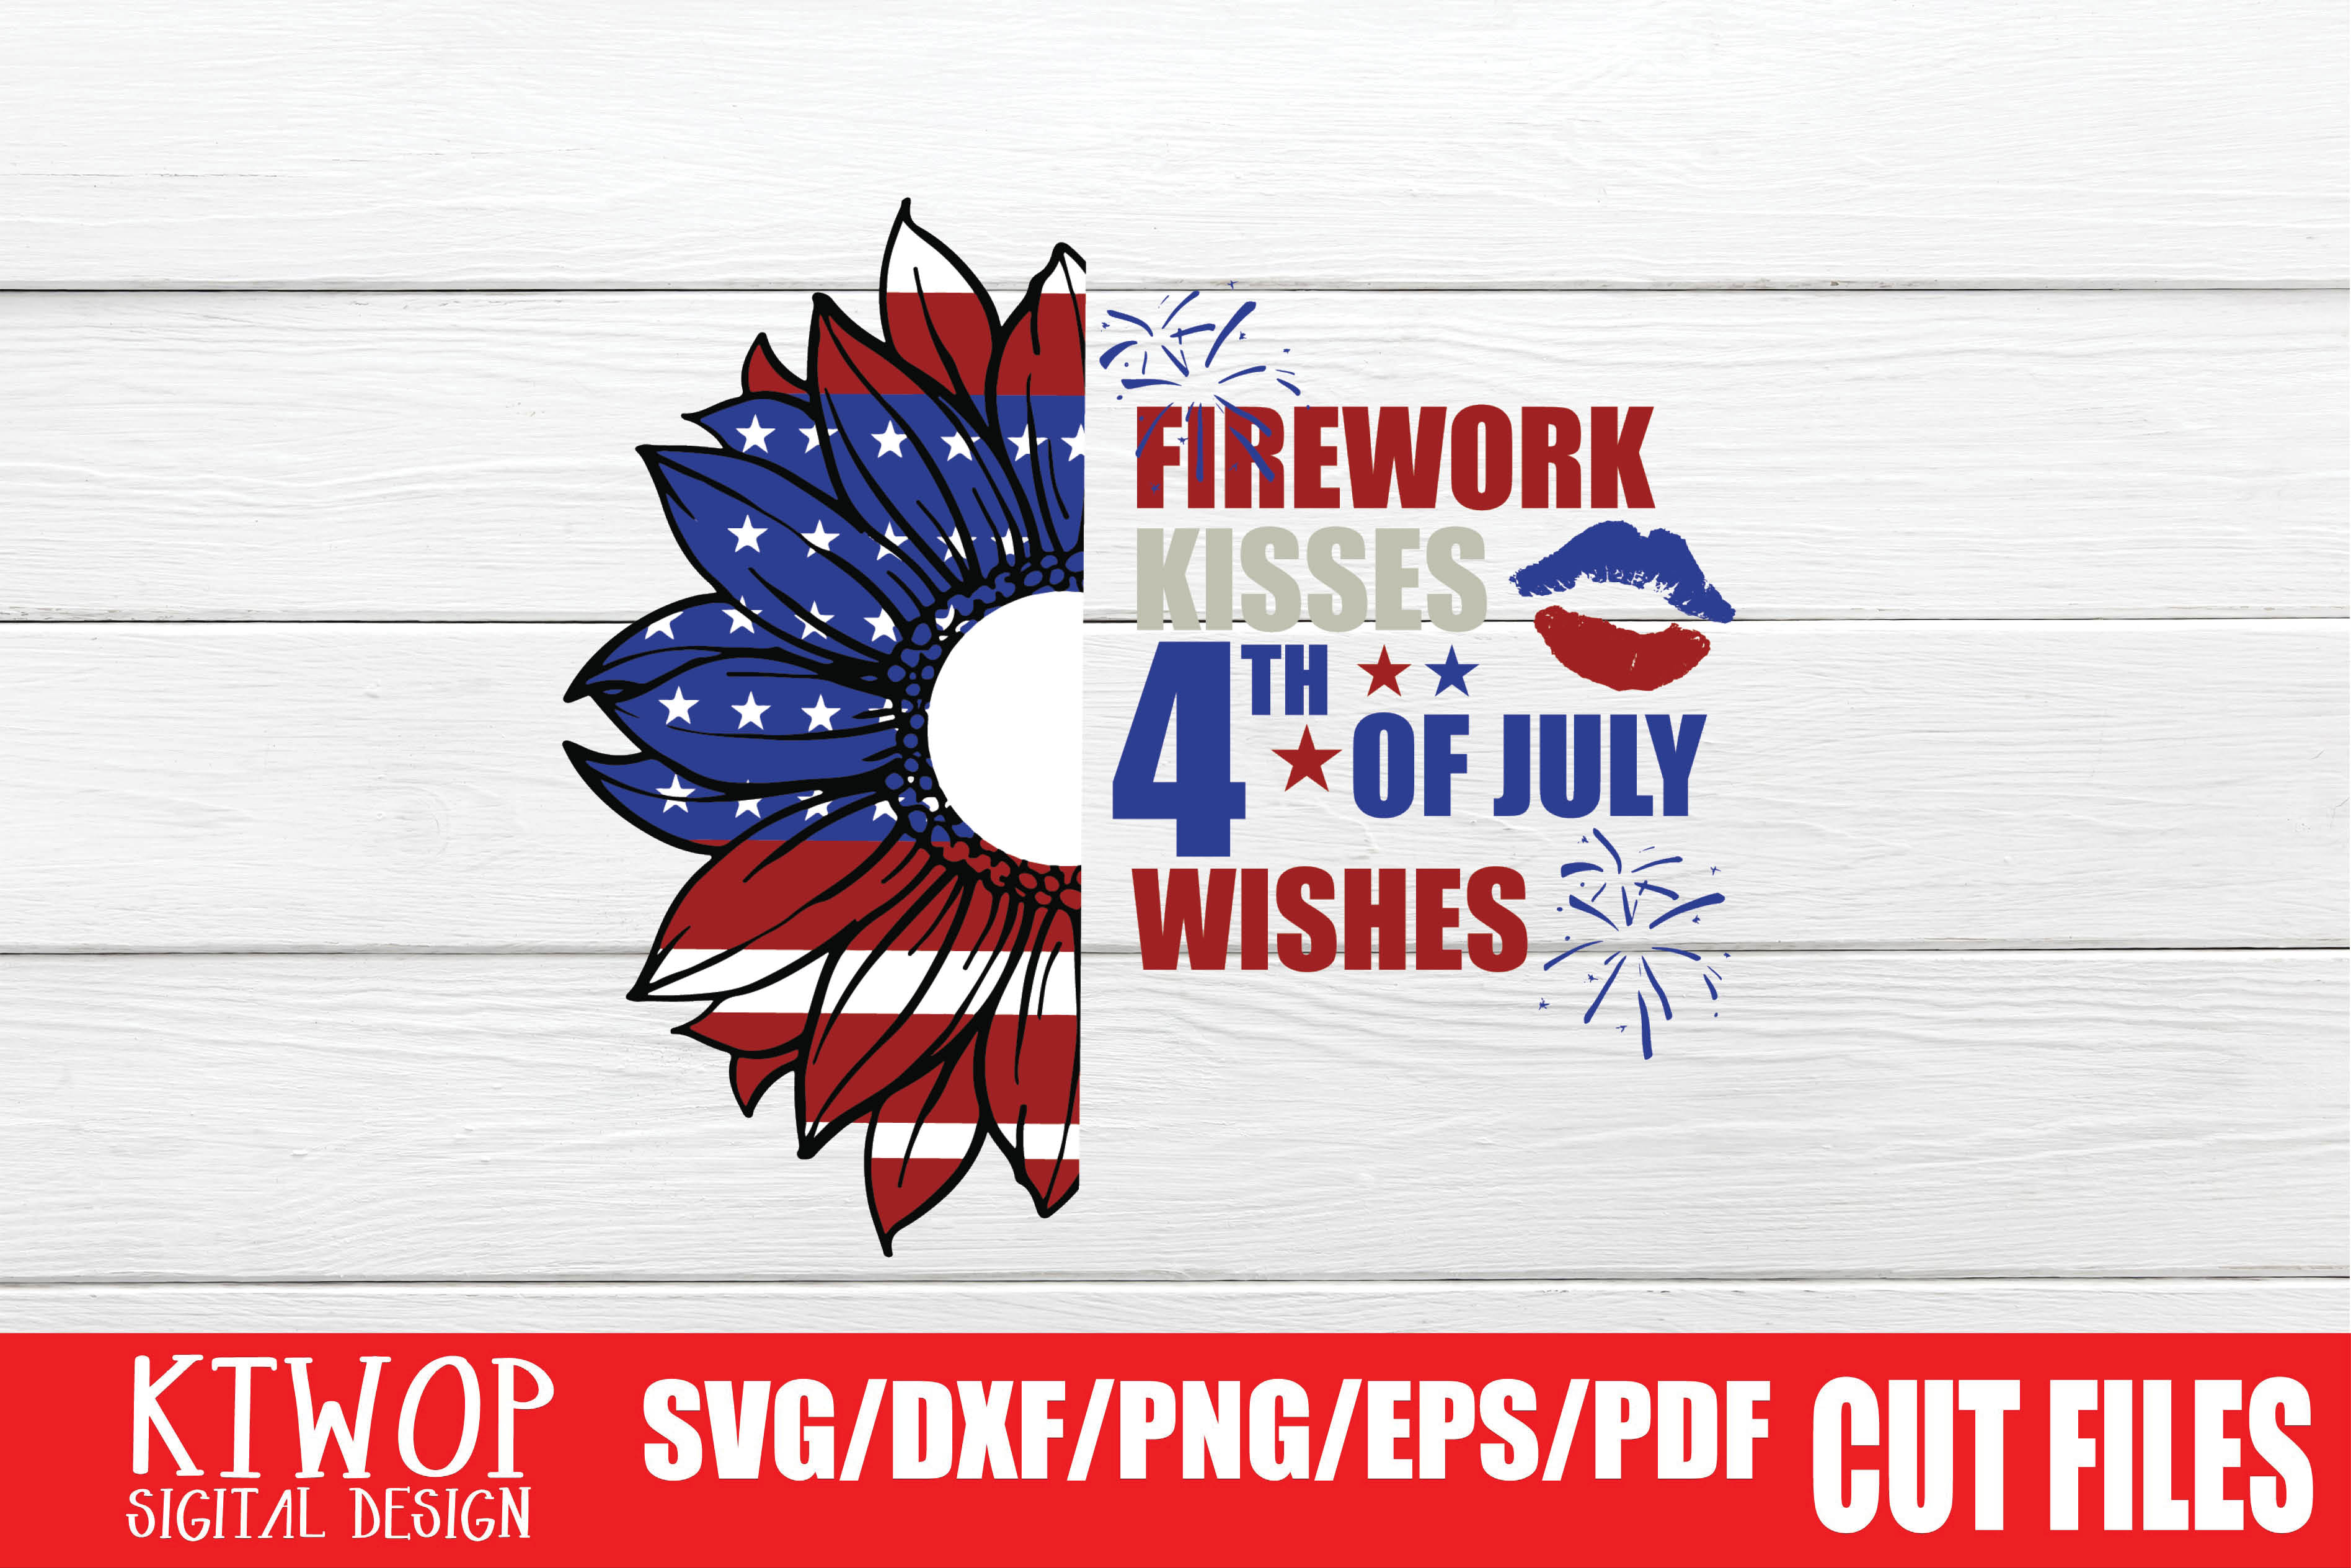 Download Free Firework Kisses 4th Of July Wishes Graphic By Ktwop Creative for Cricut Explore, Silhouette and other cutting machines.